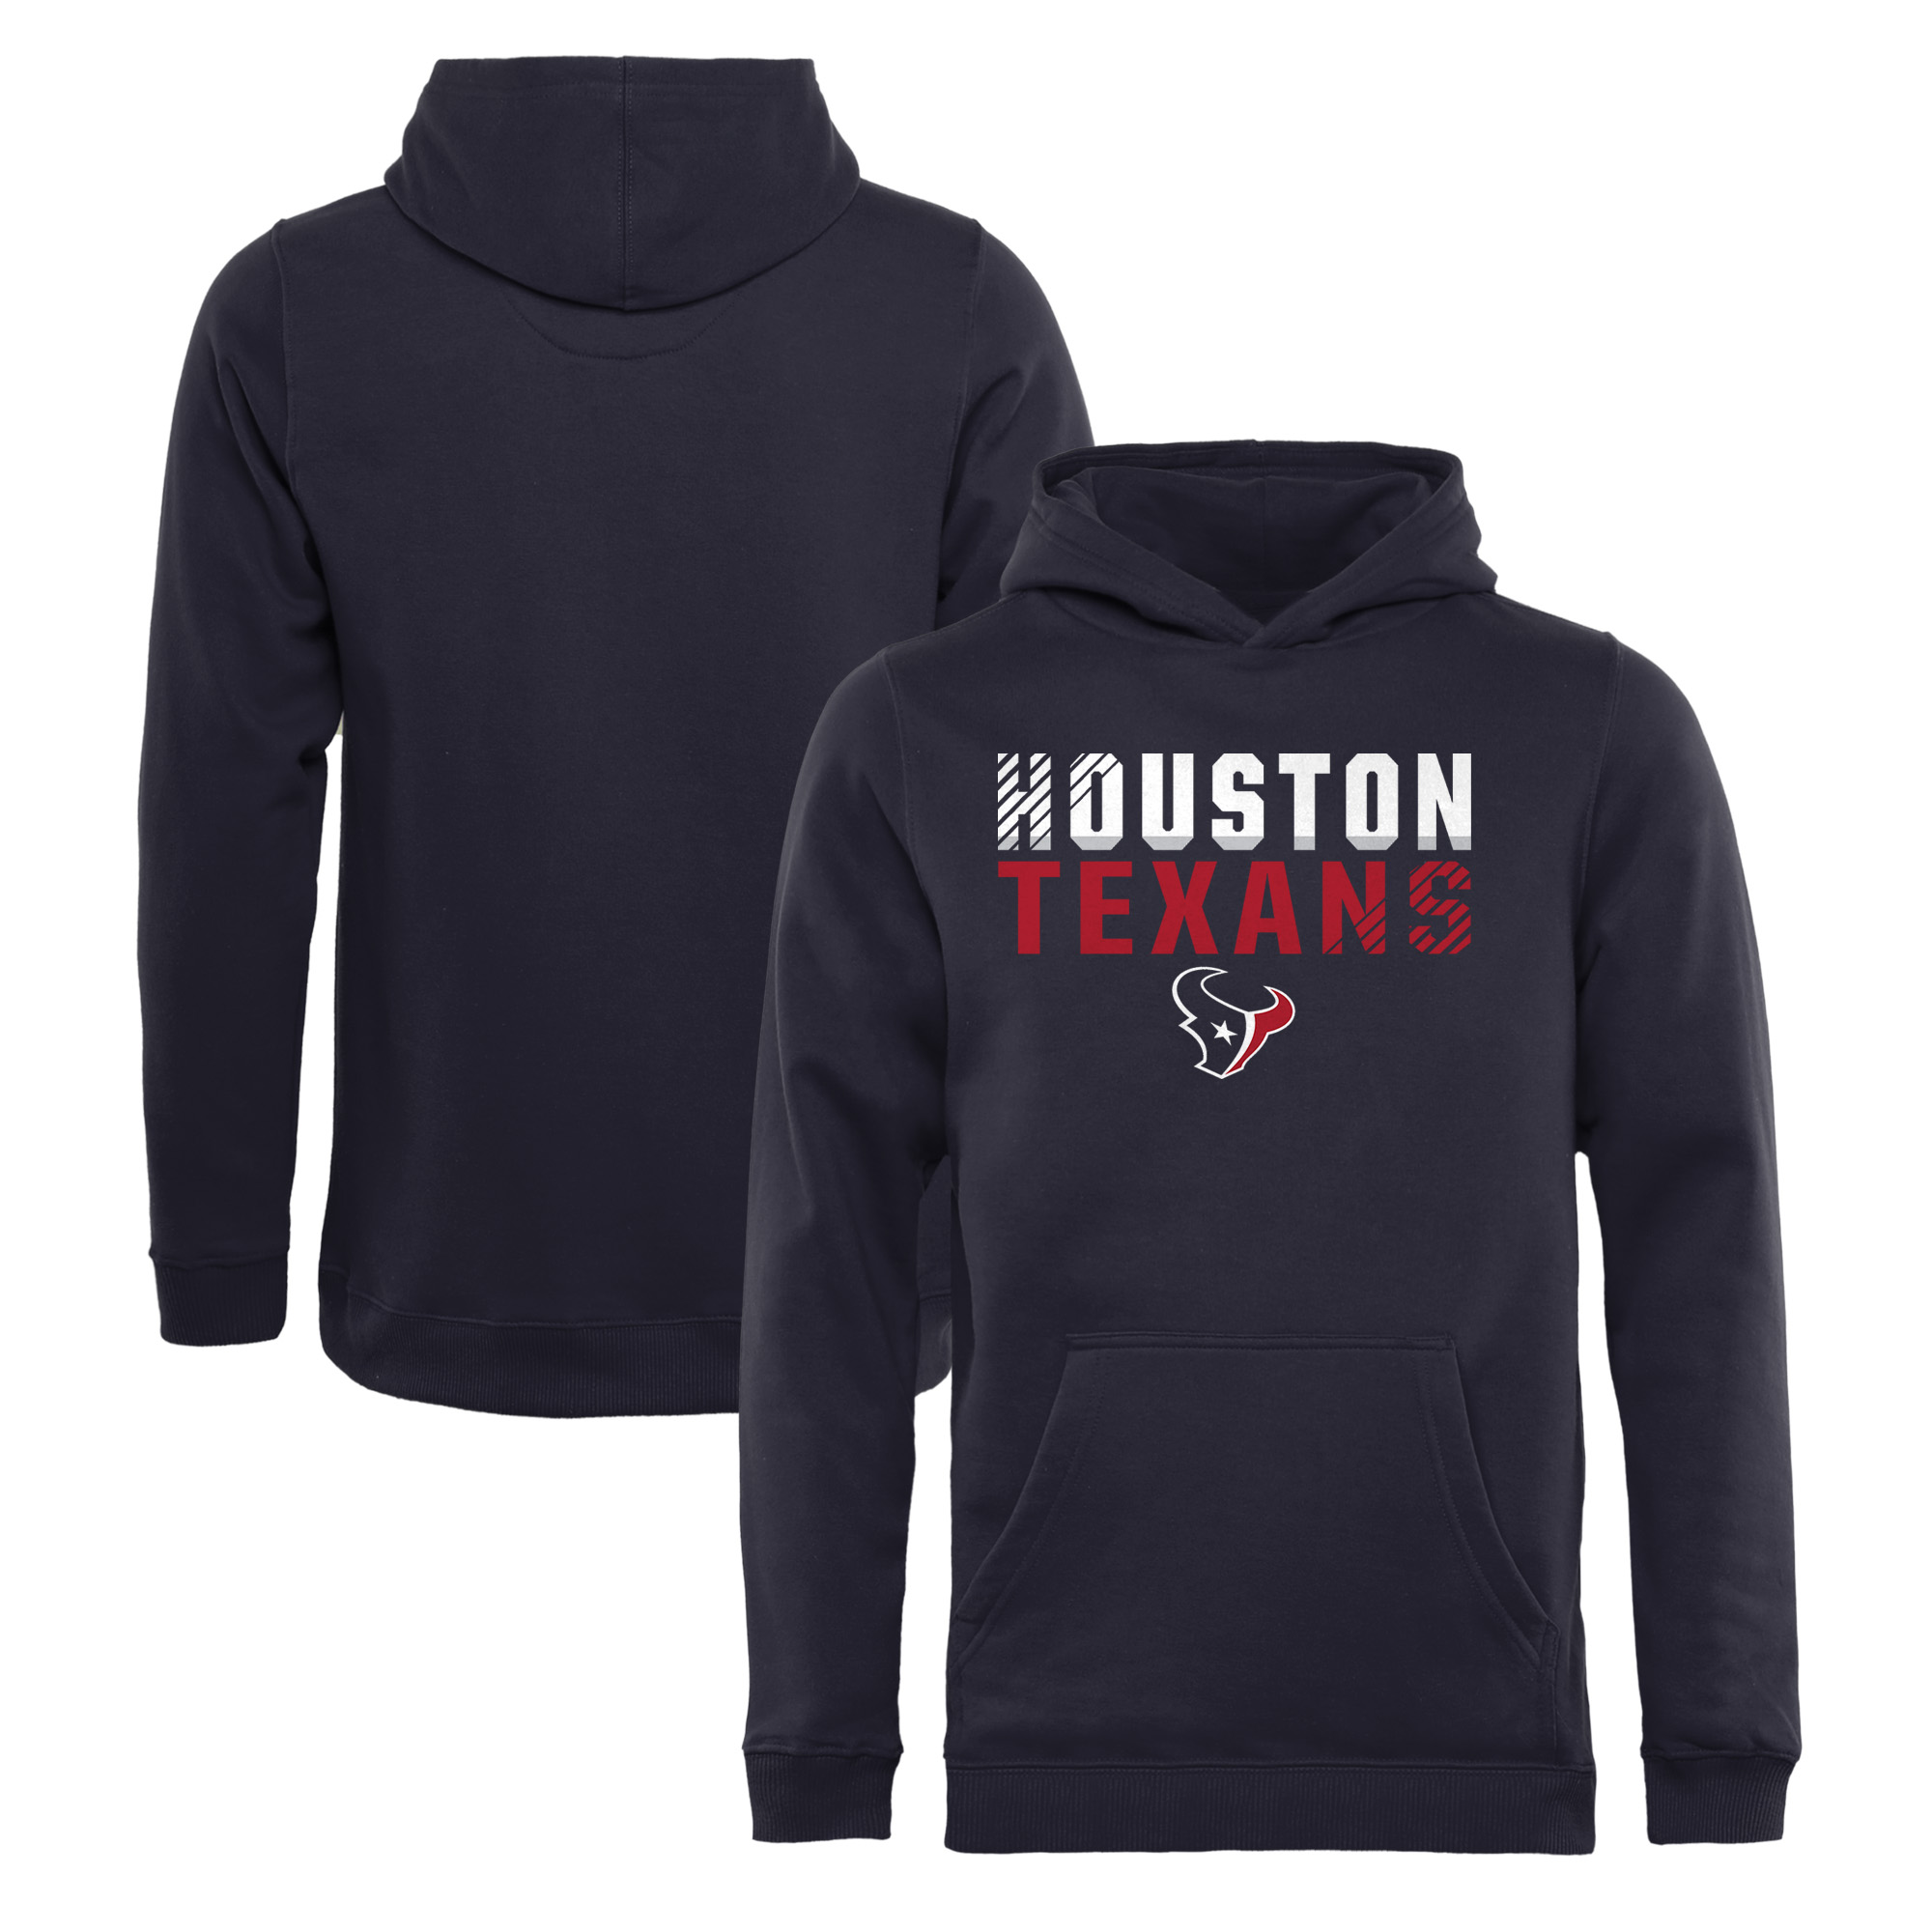 Houston Texans NFL Pro Line by Fanatics Branded Youth Iconic Collection Fade Out Pullover Hoodie - Navy